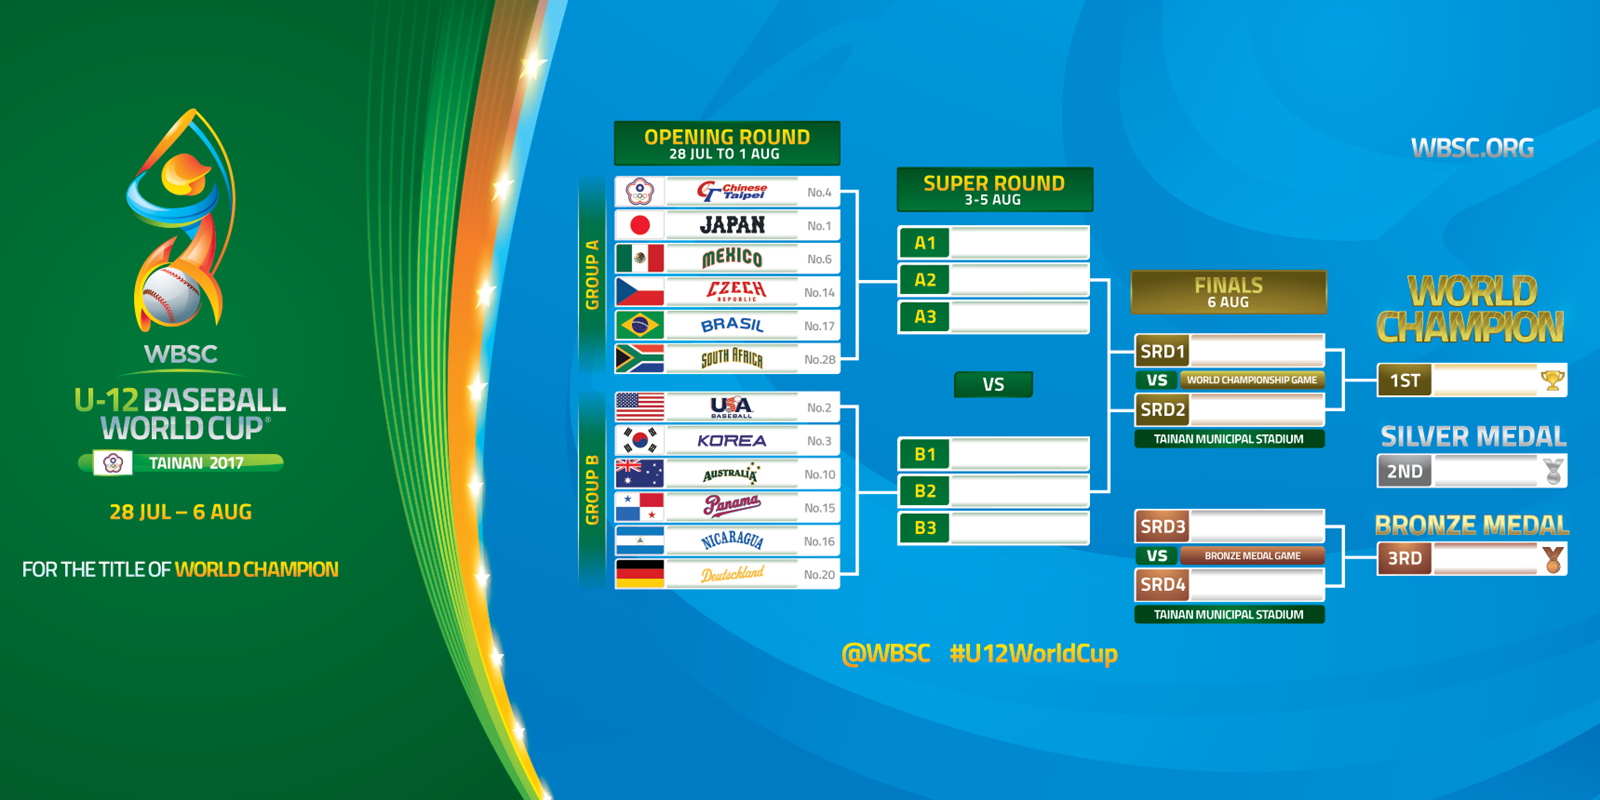 Tourney Bracket - WBSC U-12 Baseball World Cup 2017